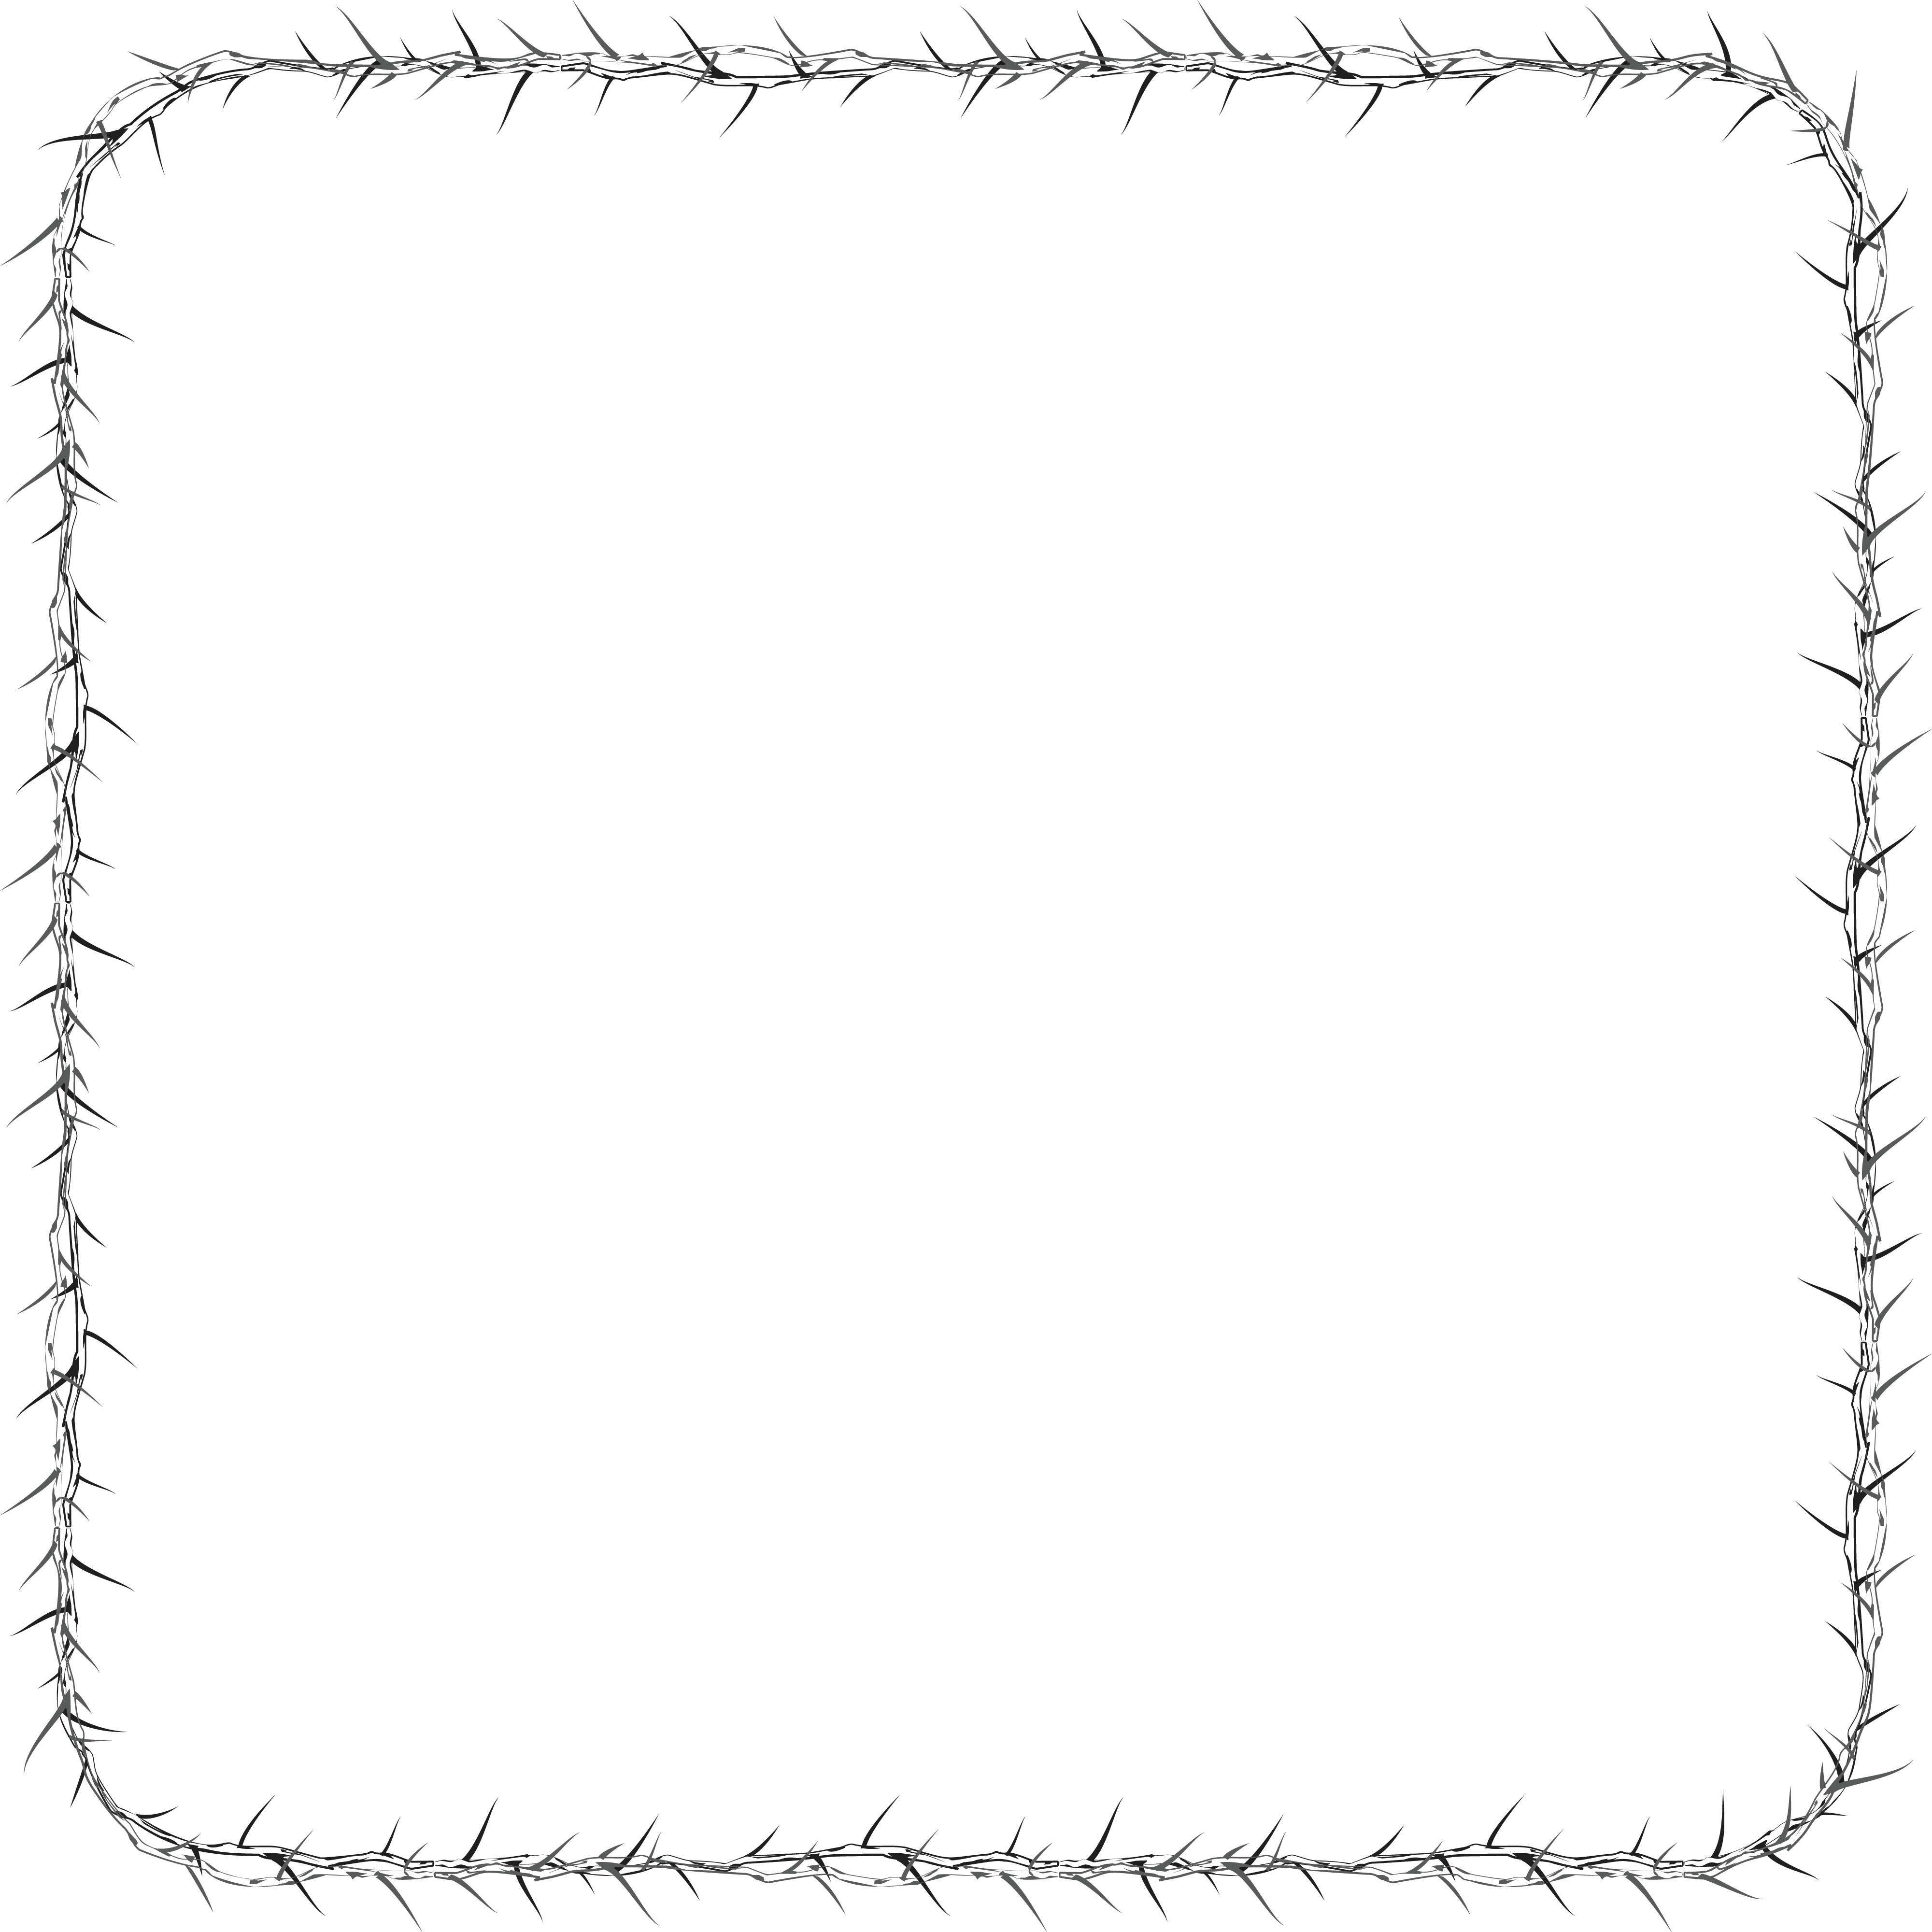 Free Clipart Of A square frame made of thorns